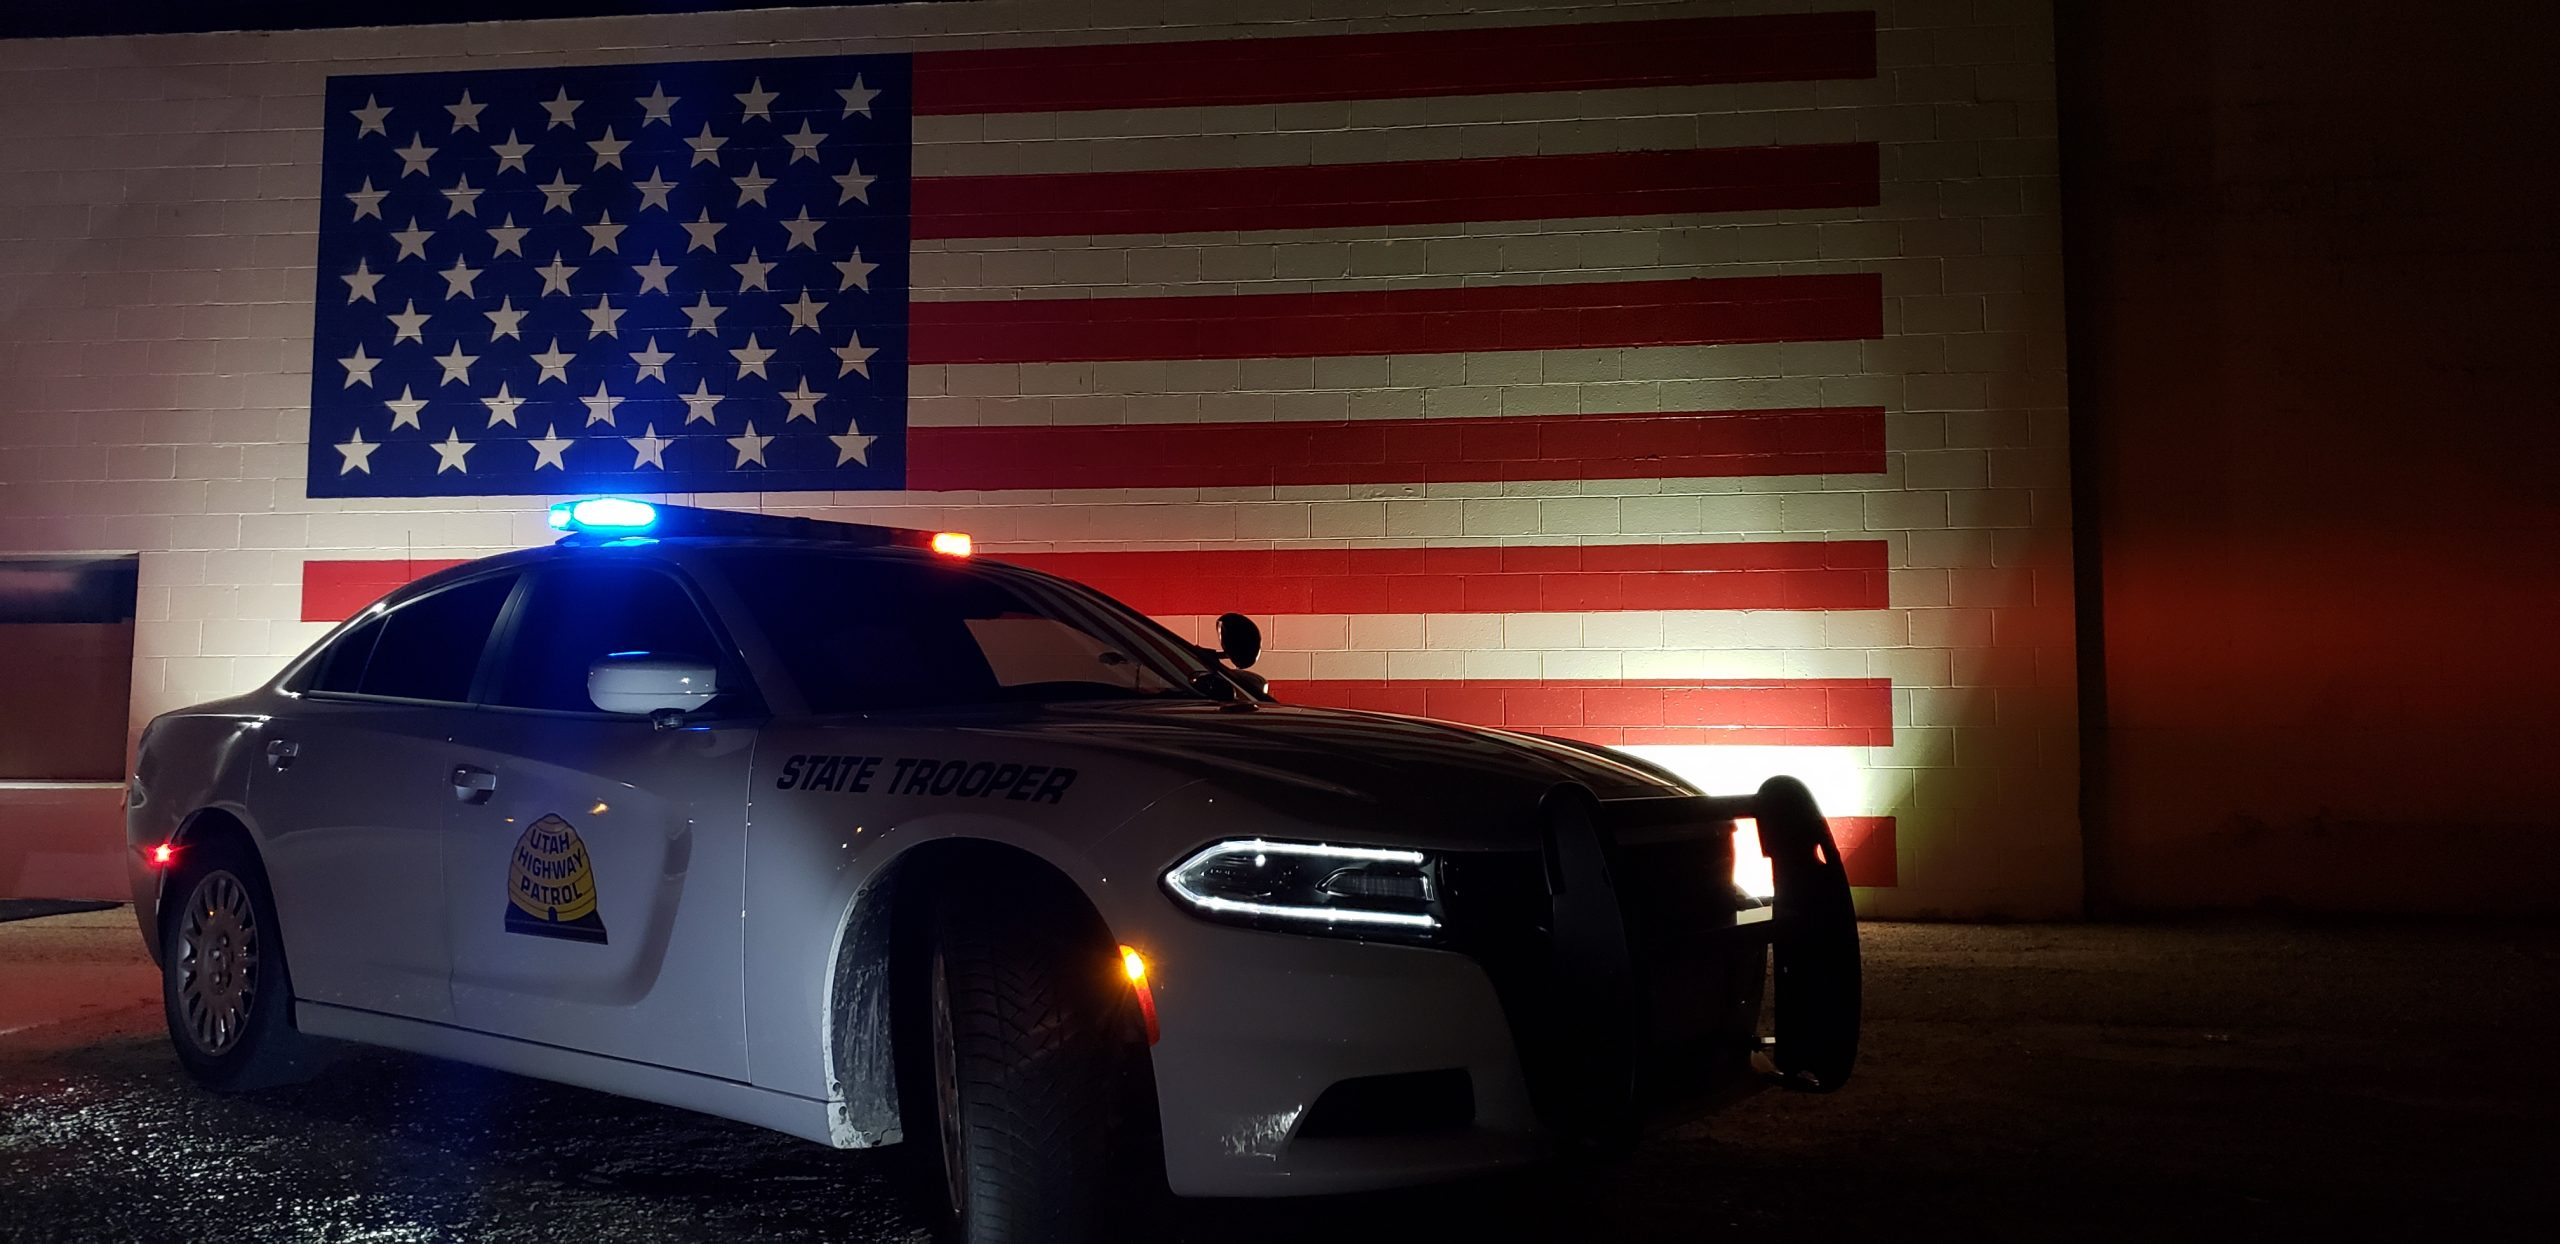 Image shows a UHP charger with it's lights on in front of a wall with an American flag painted on it.